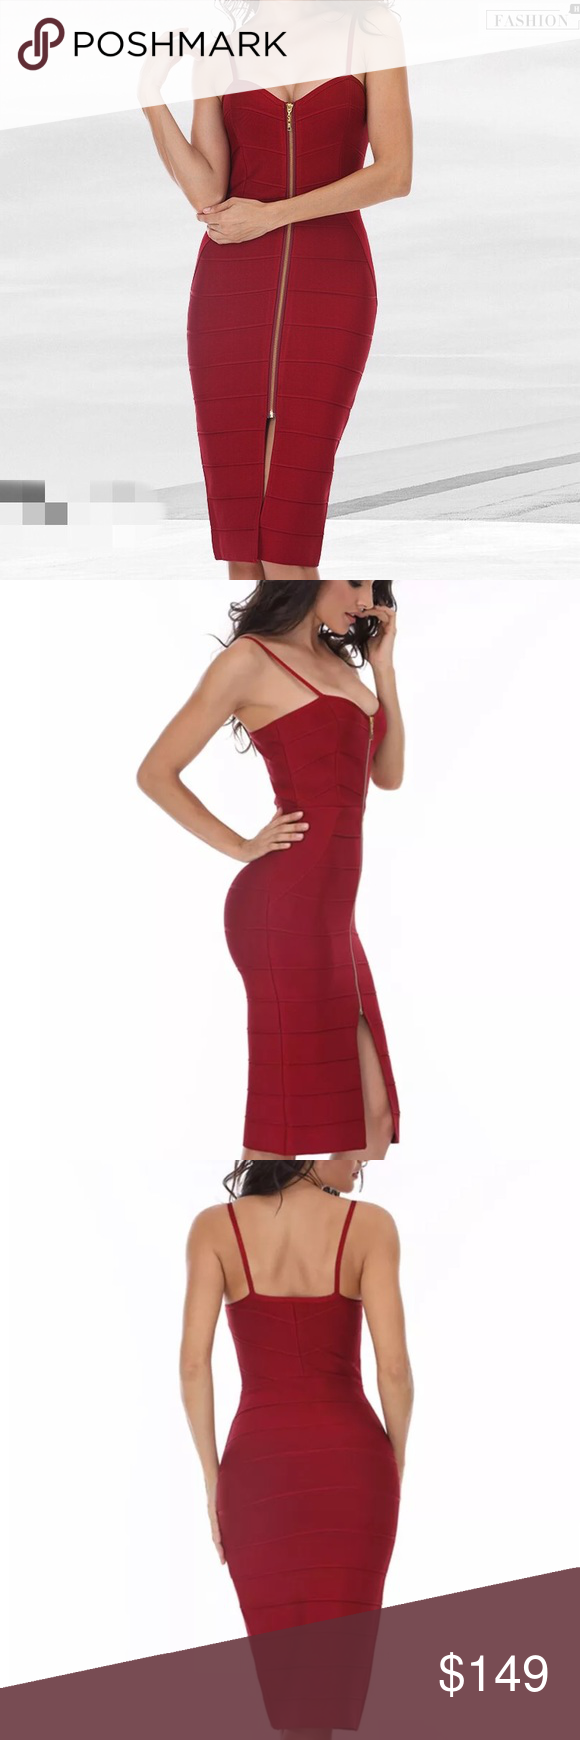 Dark red bandage bodycon evening party dress Available size XS/00-0, size S/2-4, size M/6-8, size L/10-12, stretchable, super good quality!! good for work, special event, wedding, holiday, new year eve party, night out, date night!!! Dresses